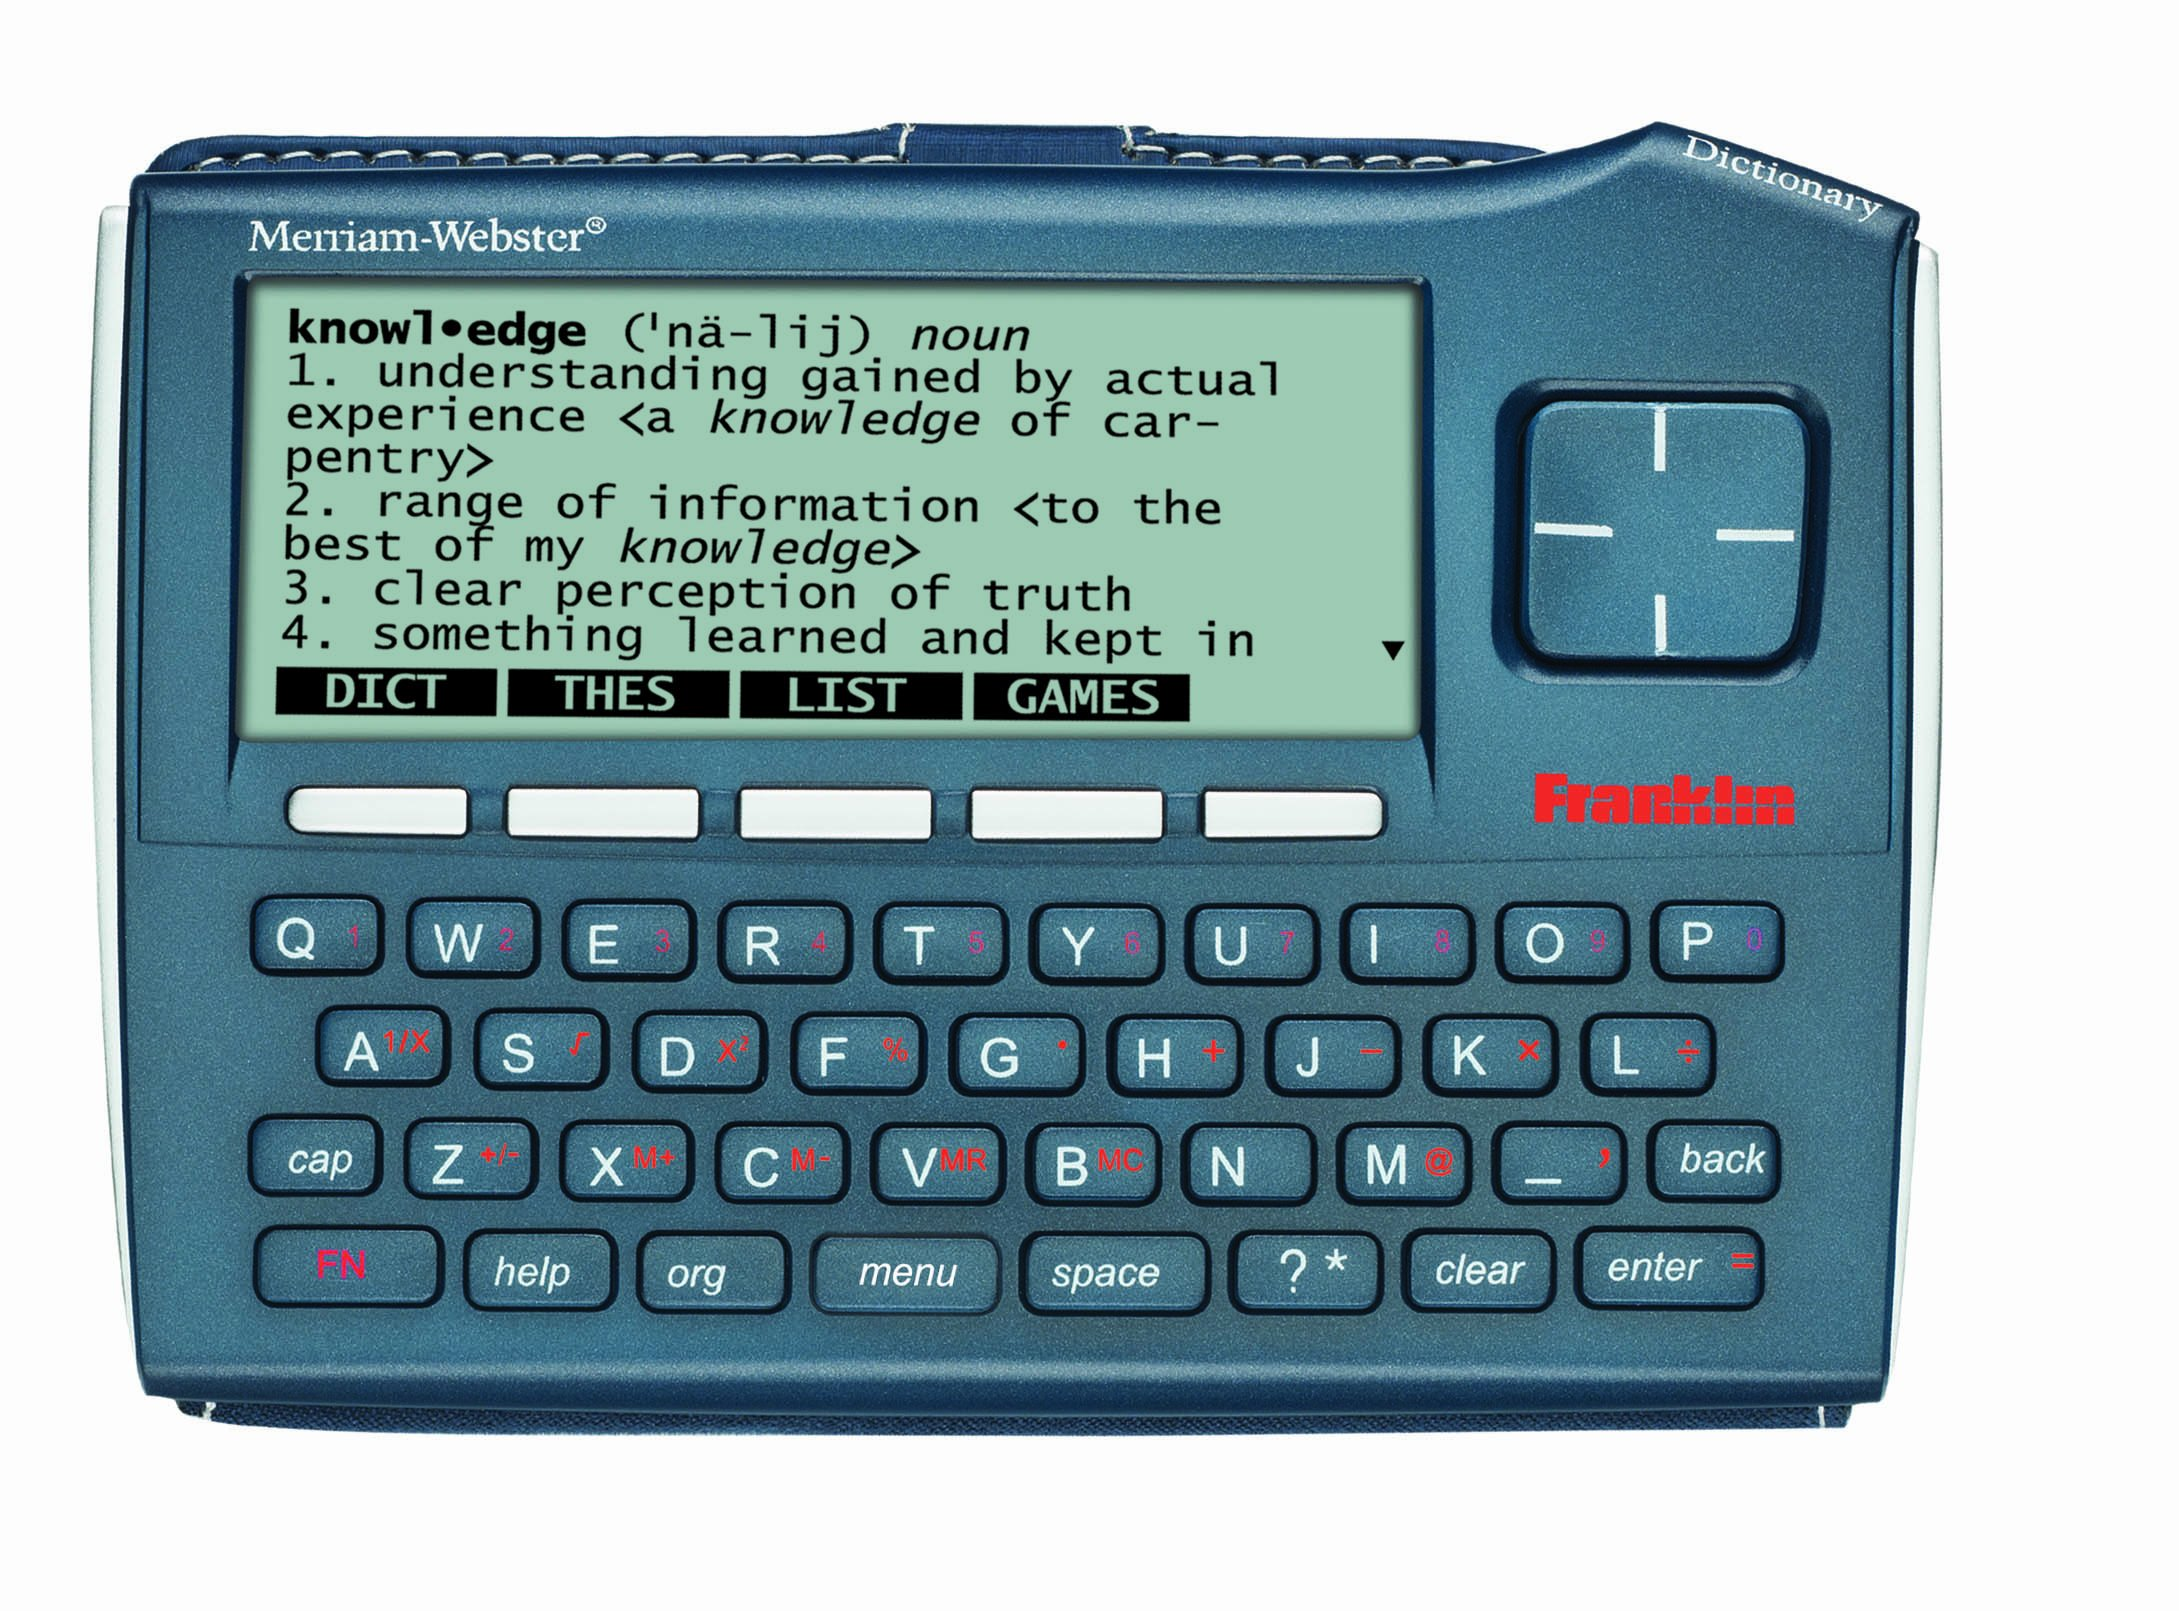 Franklin Electronics MWD-1510 Merriam-Webster Advanced Dictionary and Thesaurus with 5 Language Translator by Franklin